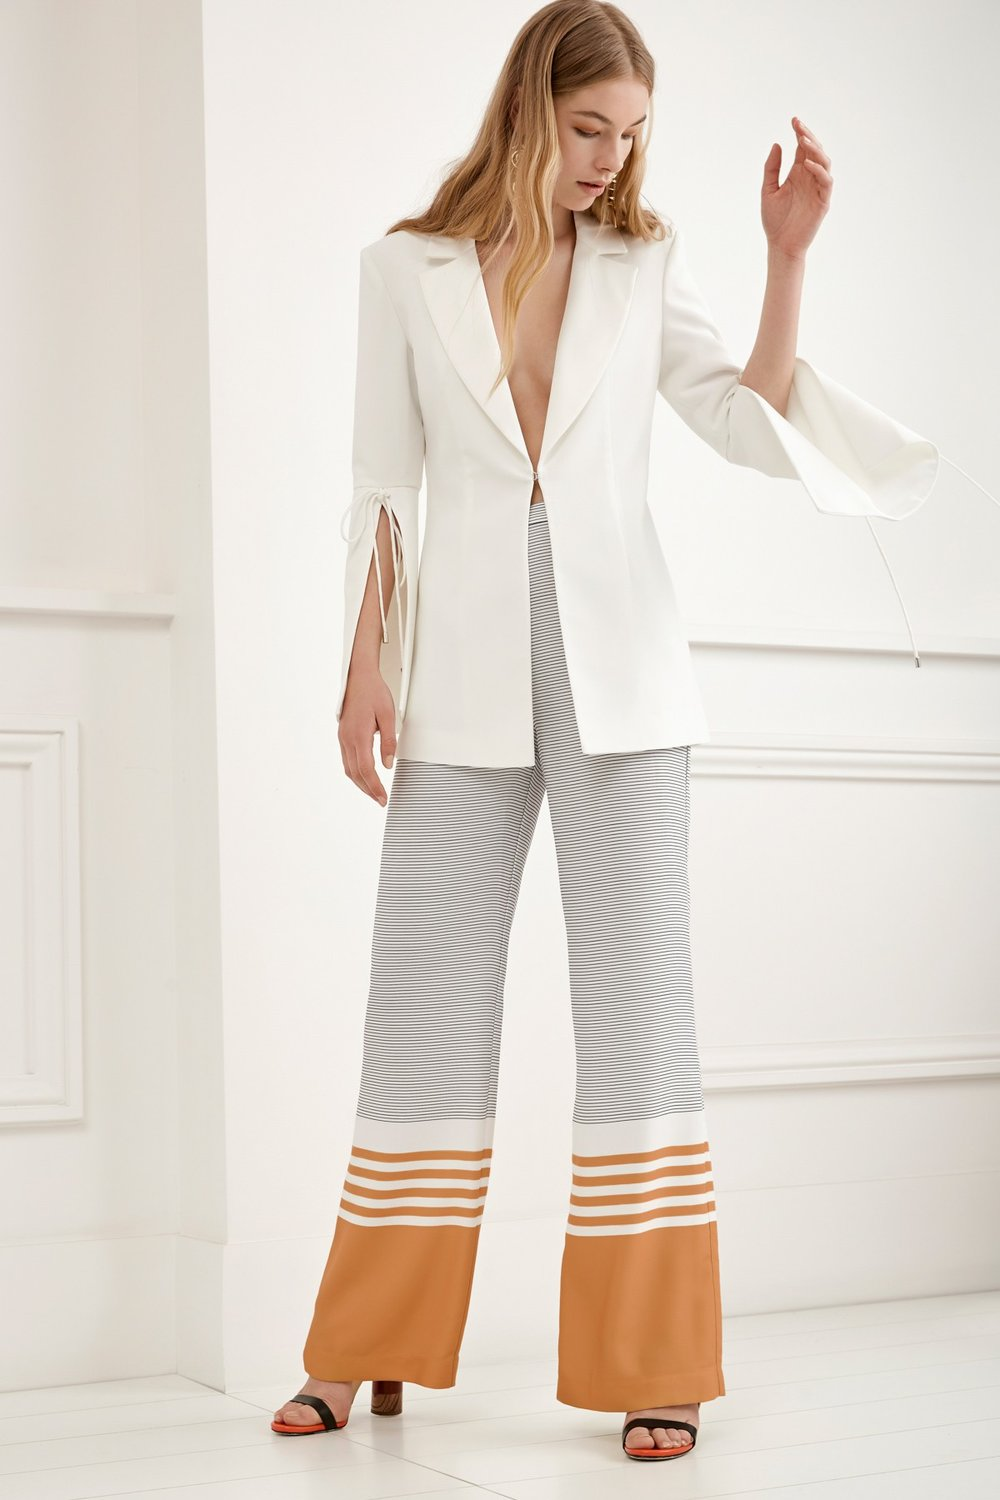 Shop  C/MEO Eternity Blazer  +  Always Waiting Pant .